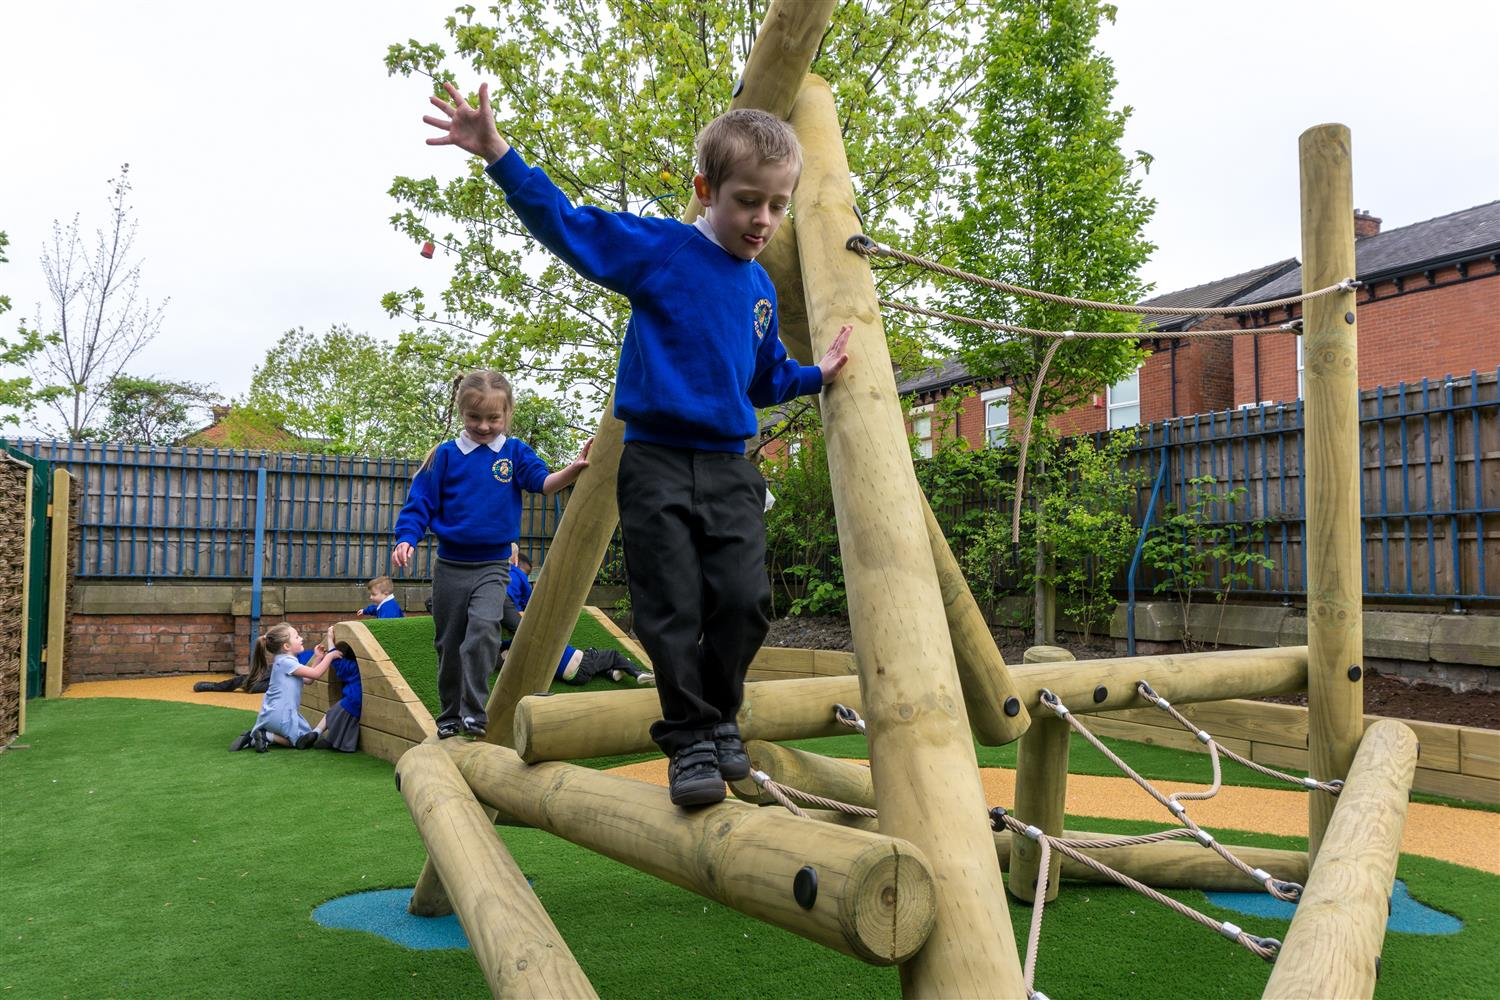 outdoor play builds resilience